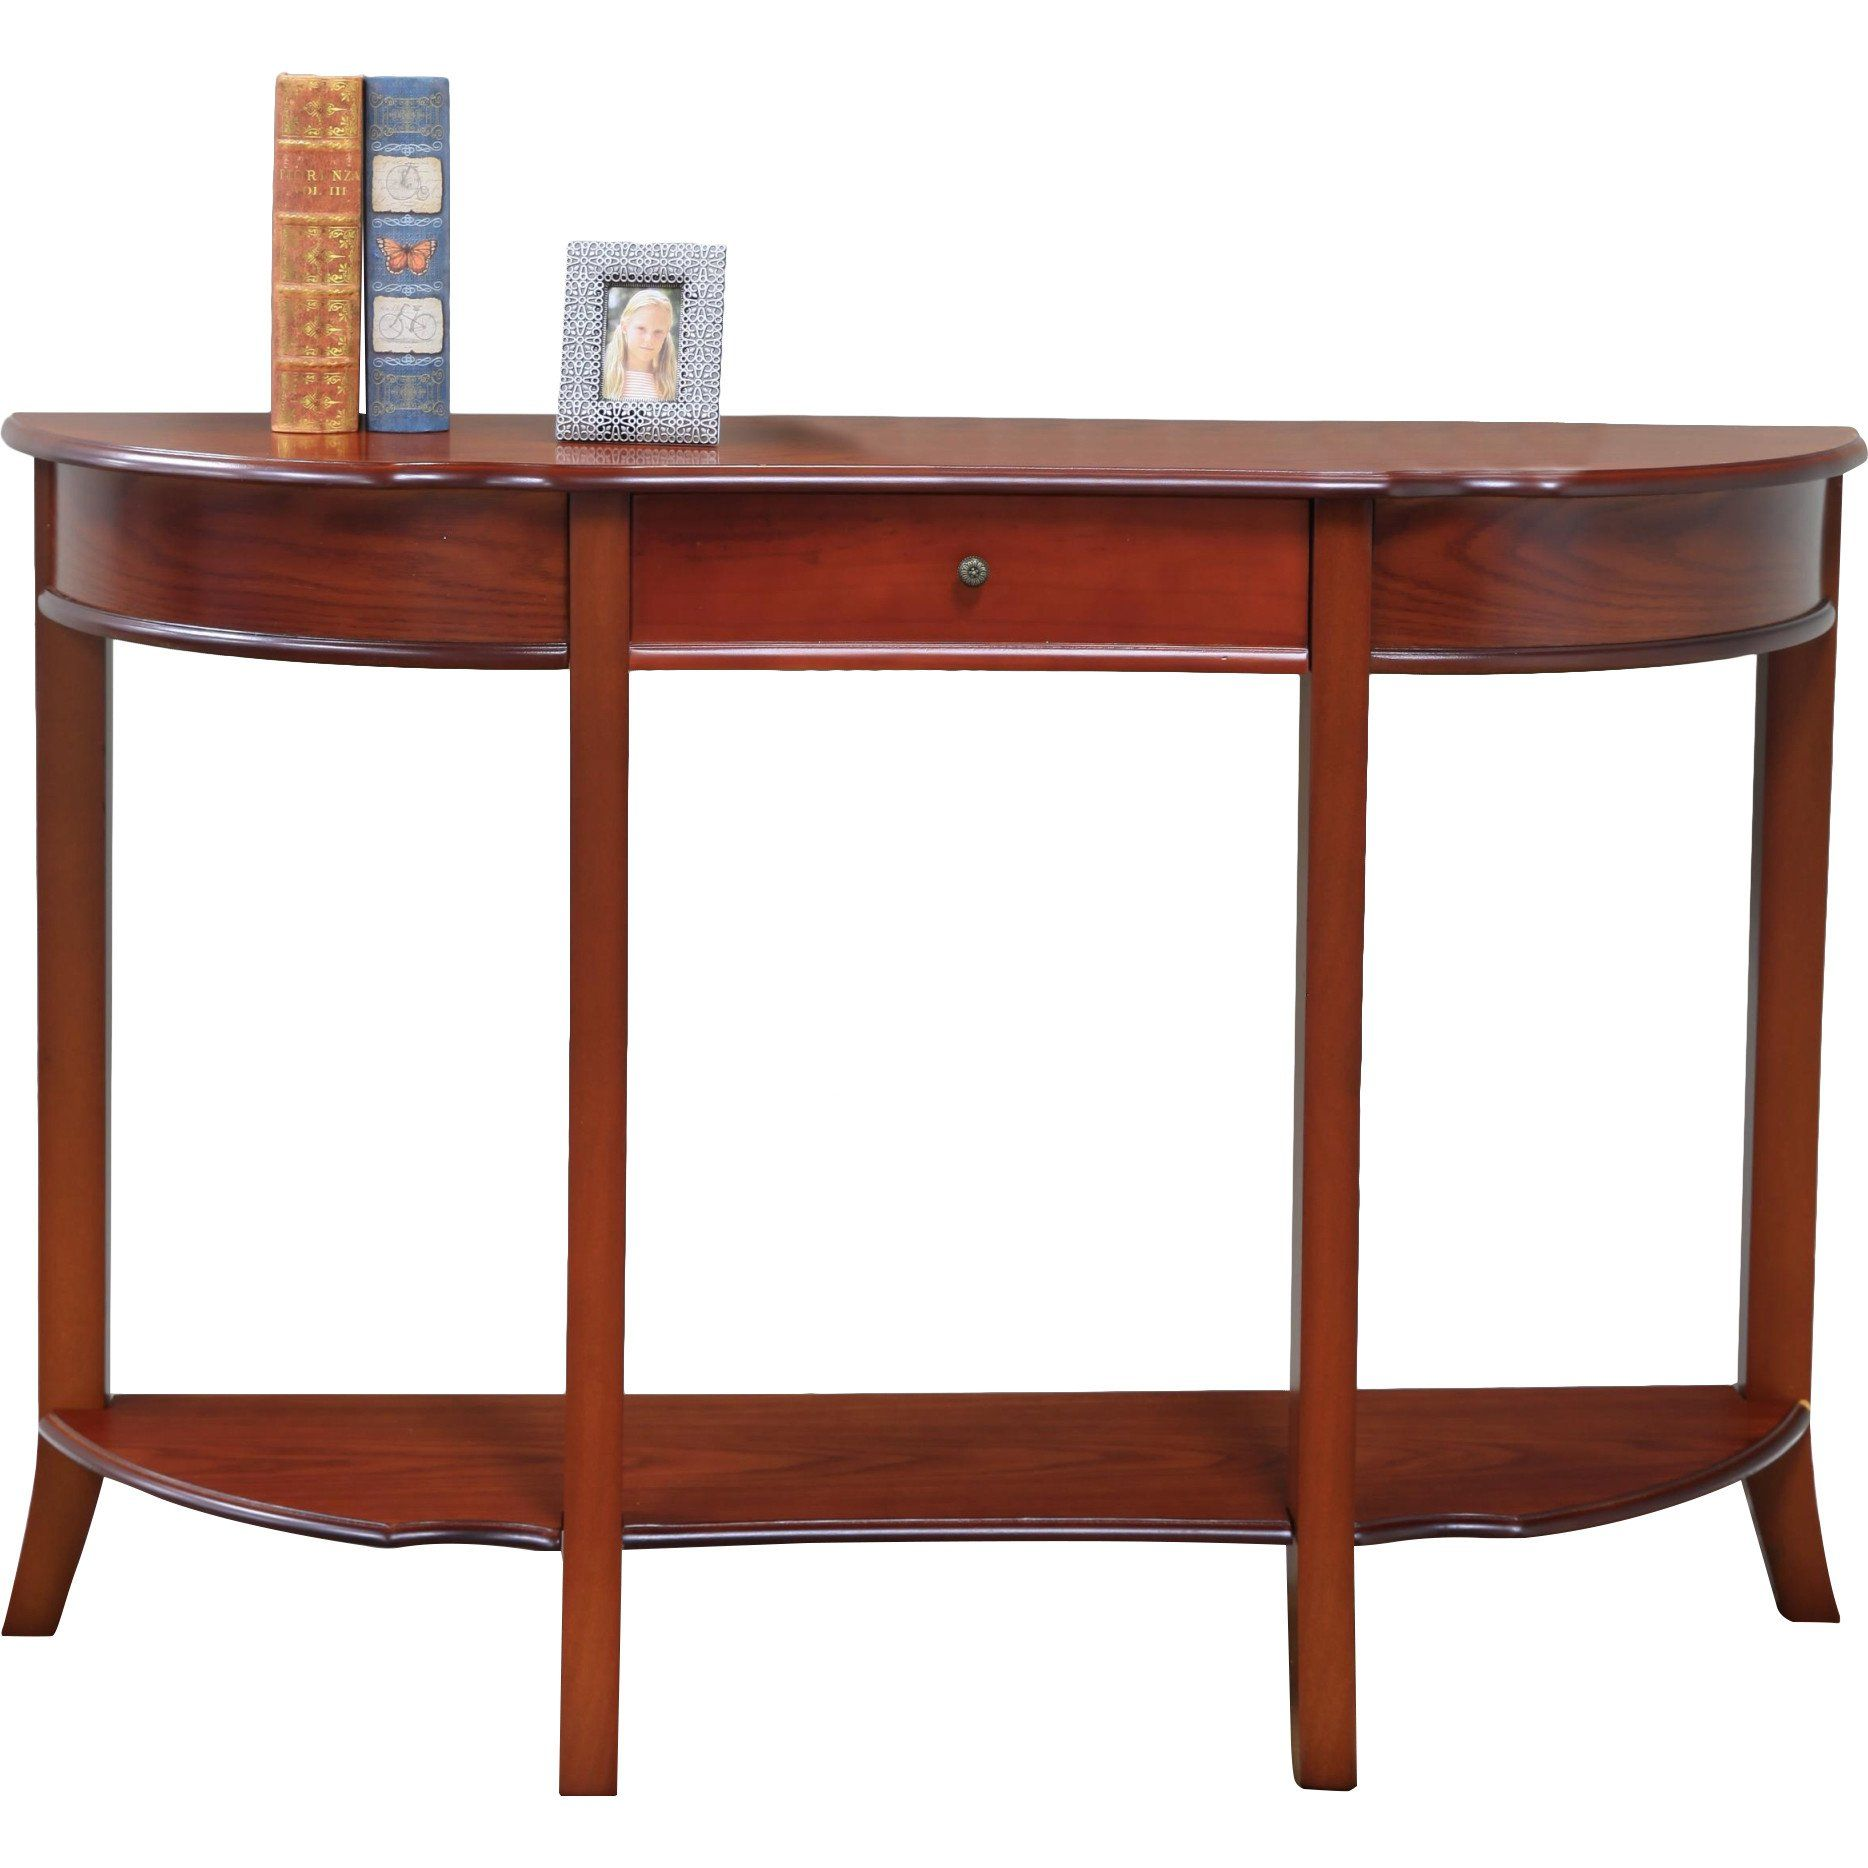 Elegant Style Halfcircle Console Table Solid Wood In Walnut Finish 31 5 H X 47 W 12 D For More Information Visit Image Link